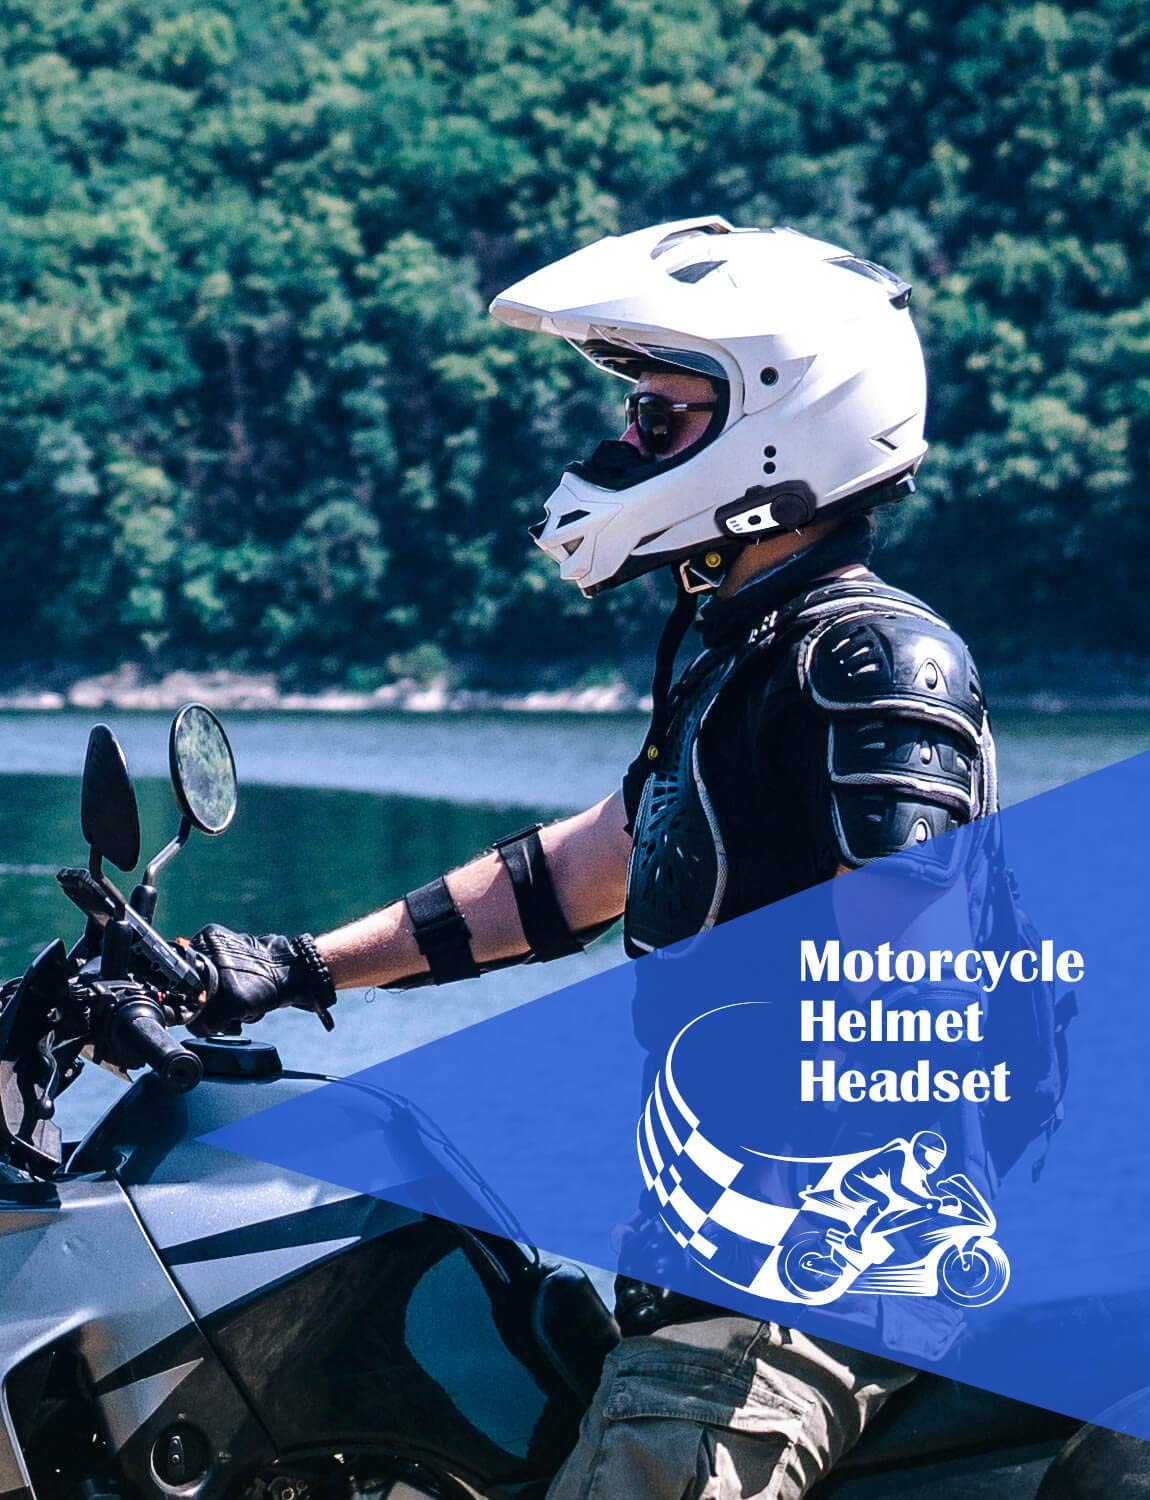 BOBLOV M6 BT Motorcycle Helmet Headset Motorbike Intercom Communication System with Noise Cancellation Technology Built-in FM Radio Stereo Music for Rider and Passenger